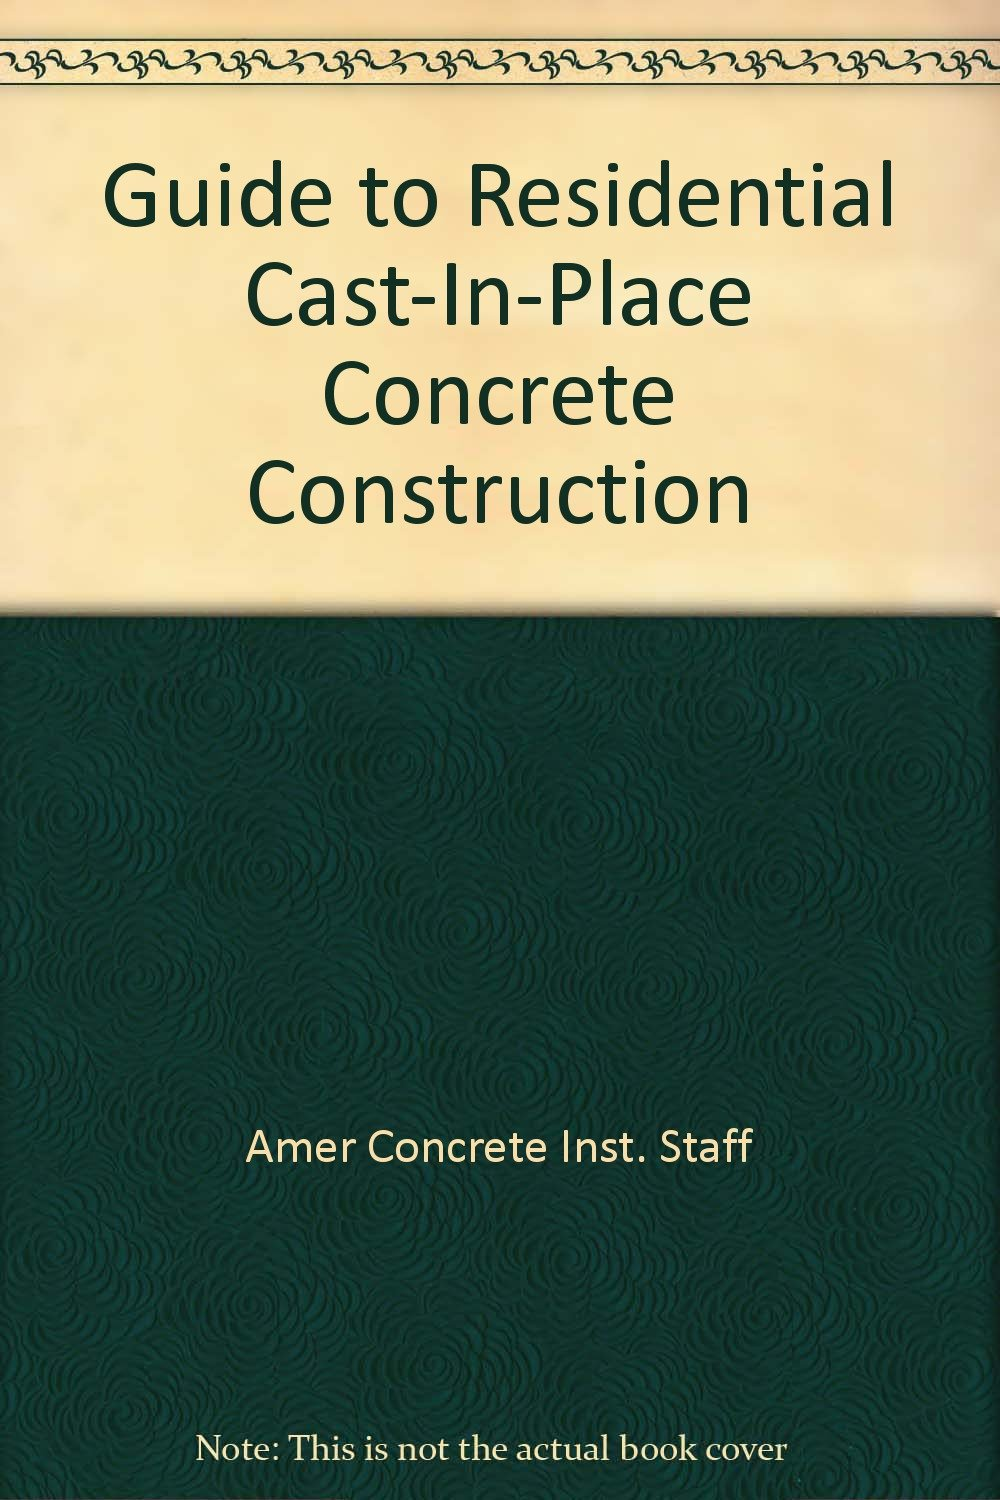 Guide to Residential Cast-In-Place Concrete Construction